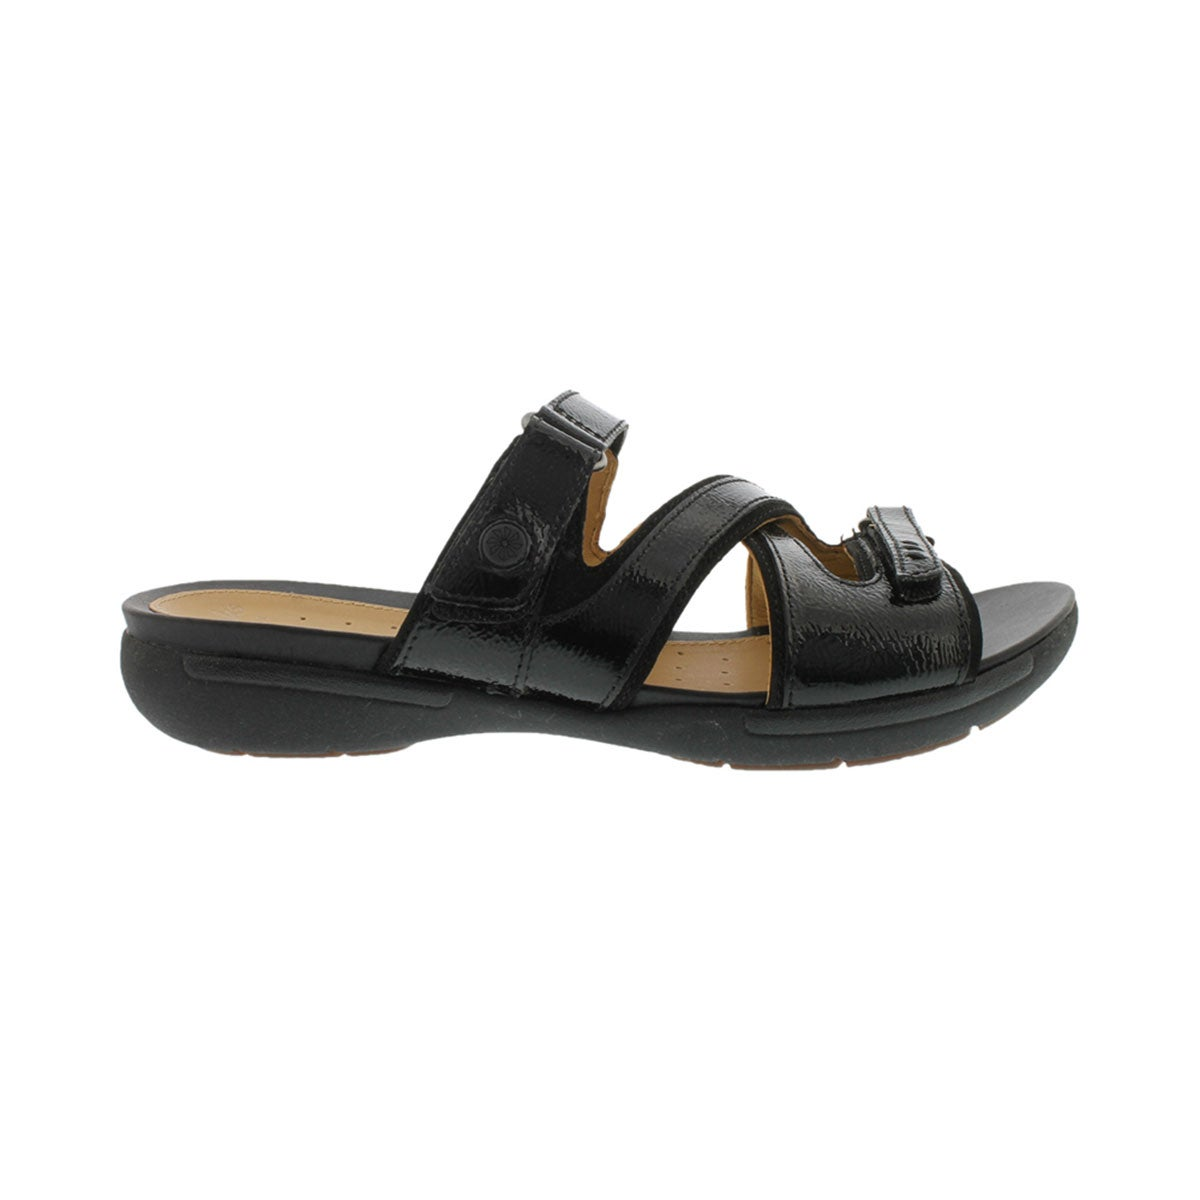 Lds Un.Verlee black casual slide sandal